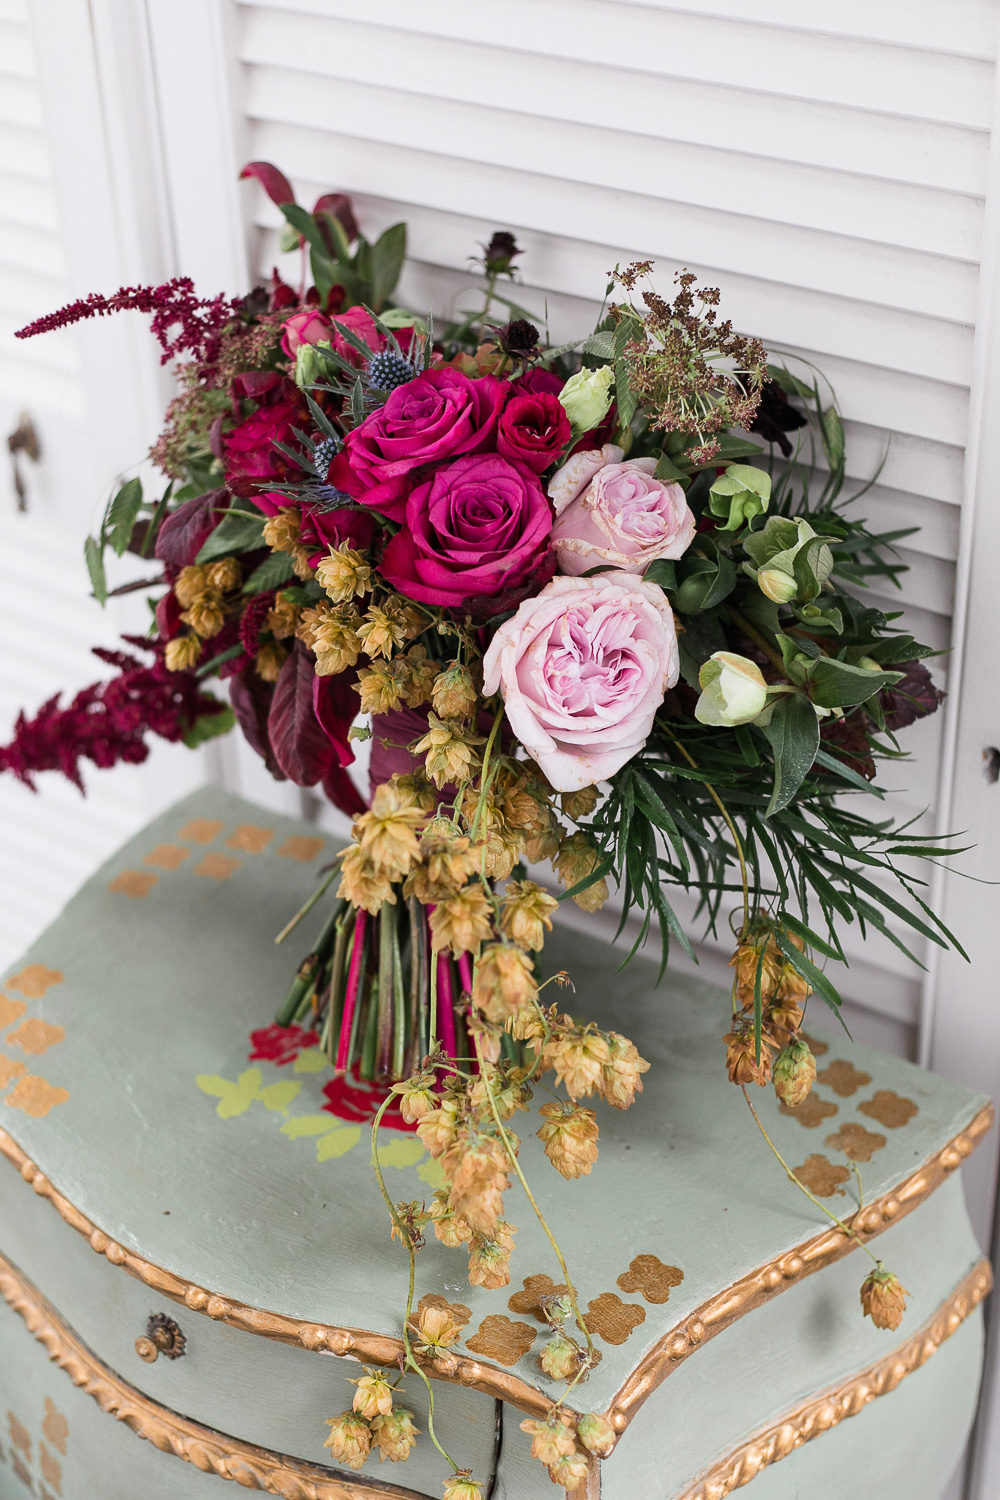 Wedding flowers with roses and hanging details on a vintage cabinet